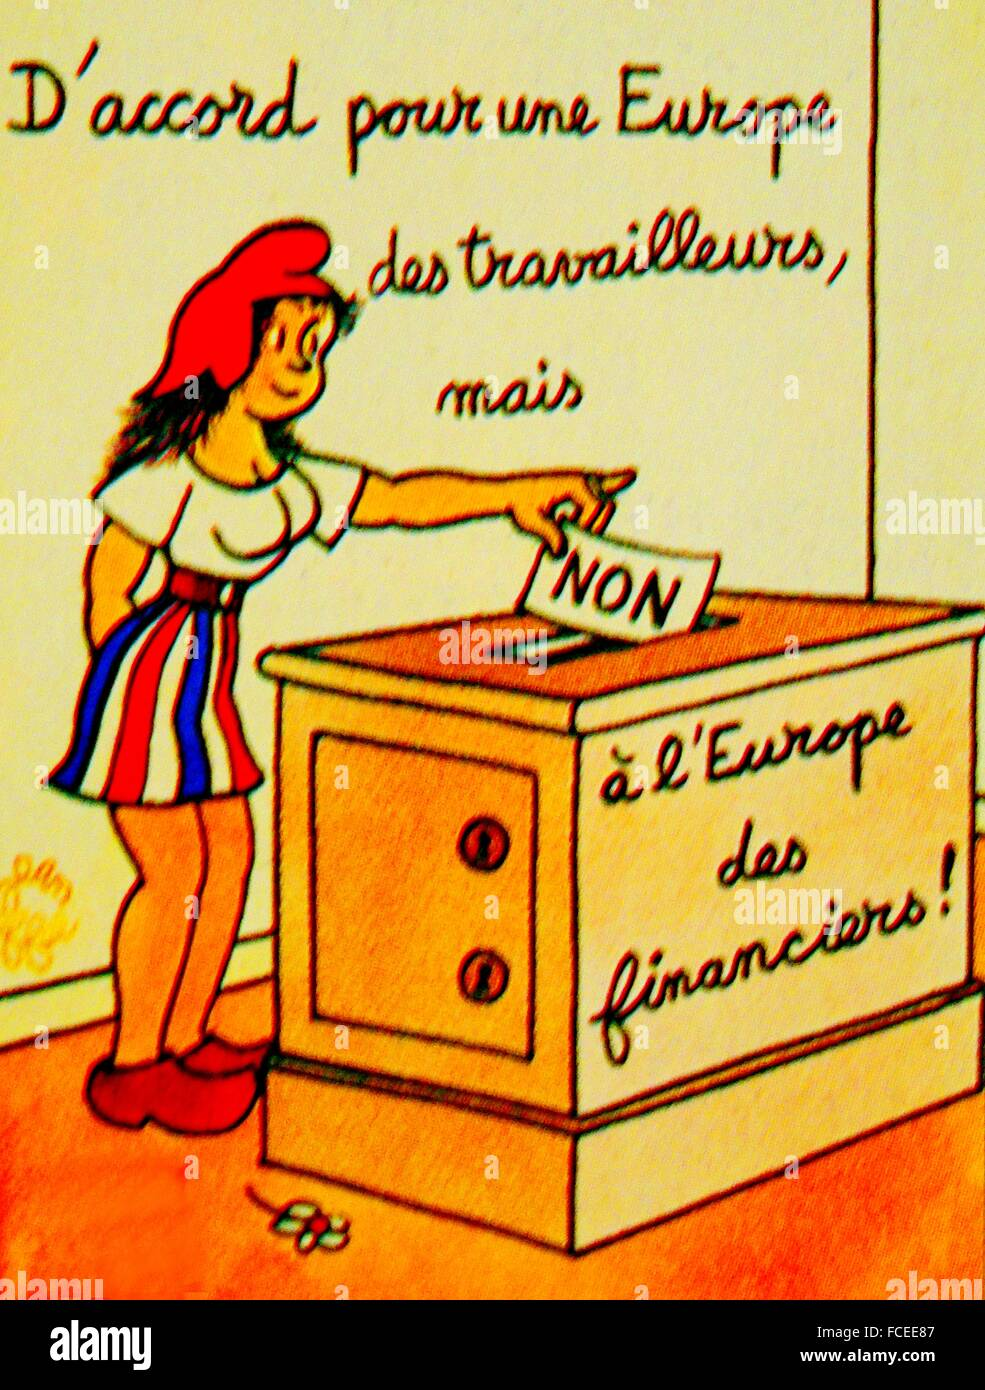 France.  Poster by Jean Effel, 1972, about EC election. (Ok, for a Europe of workers, but No for the Europe of bankers.). - Stock Image